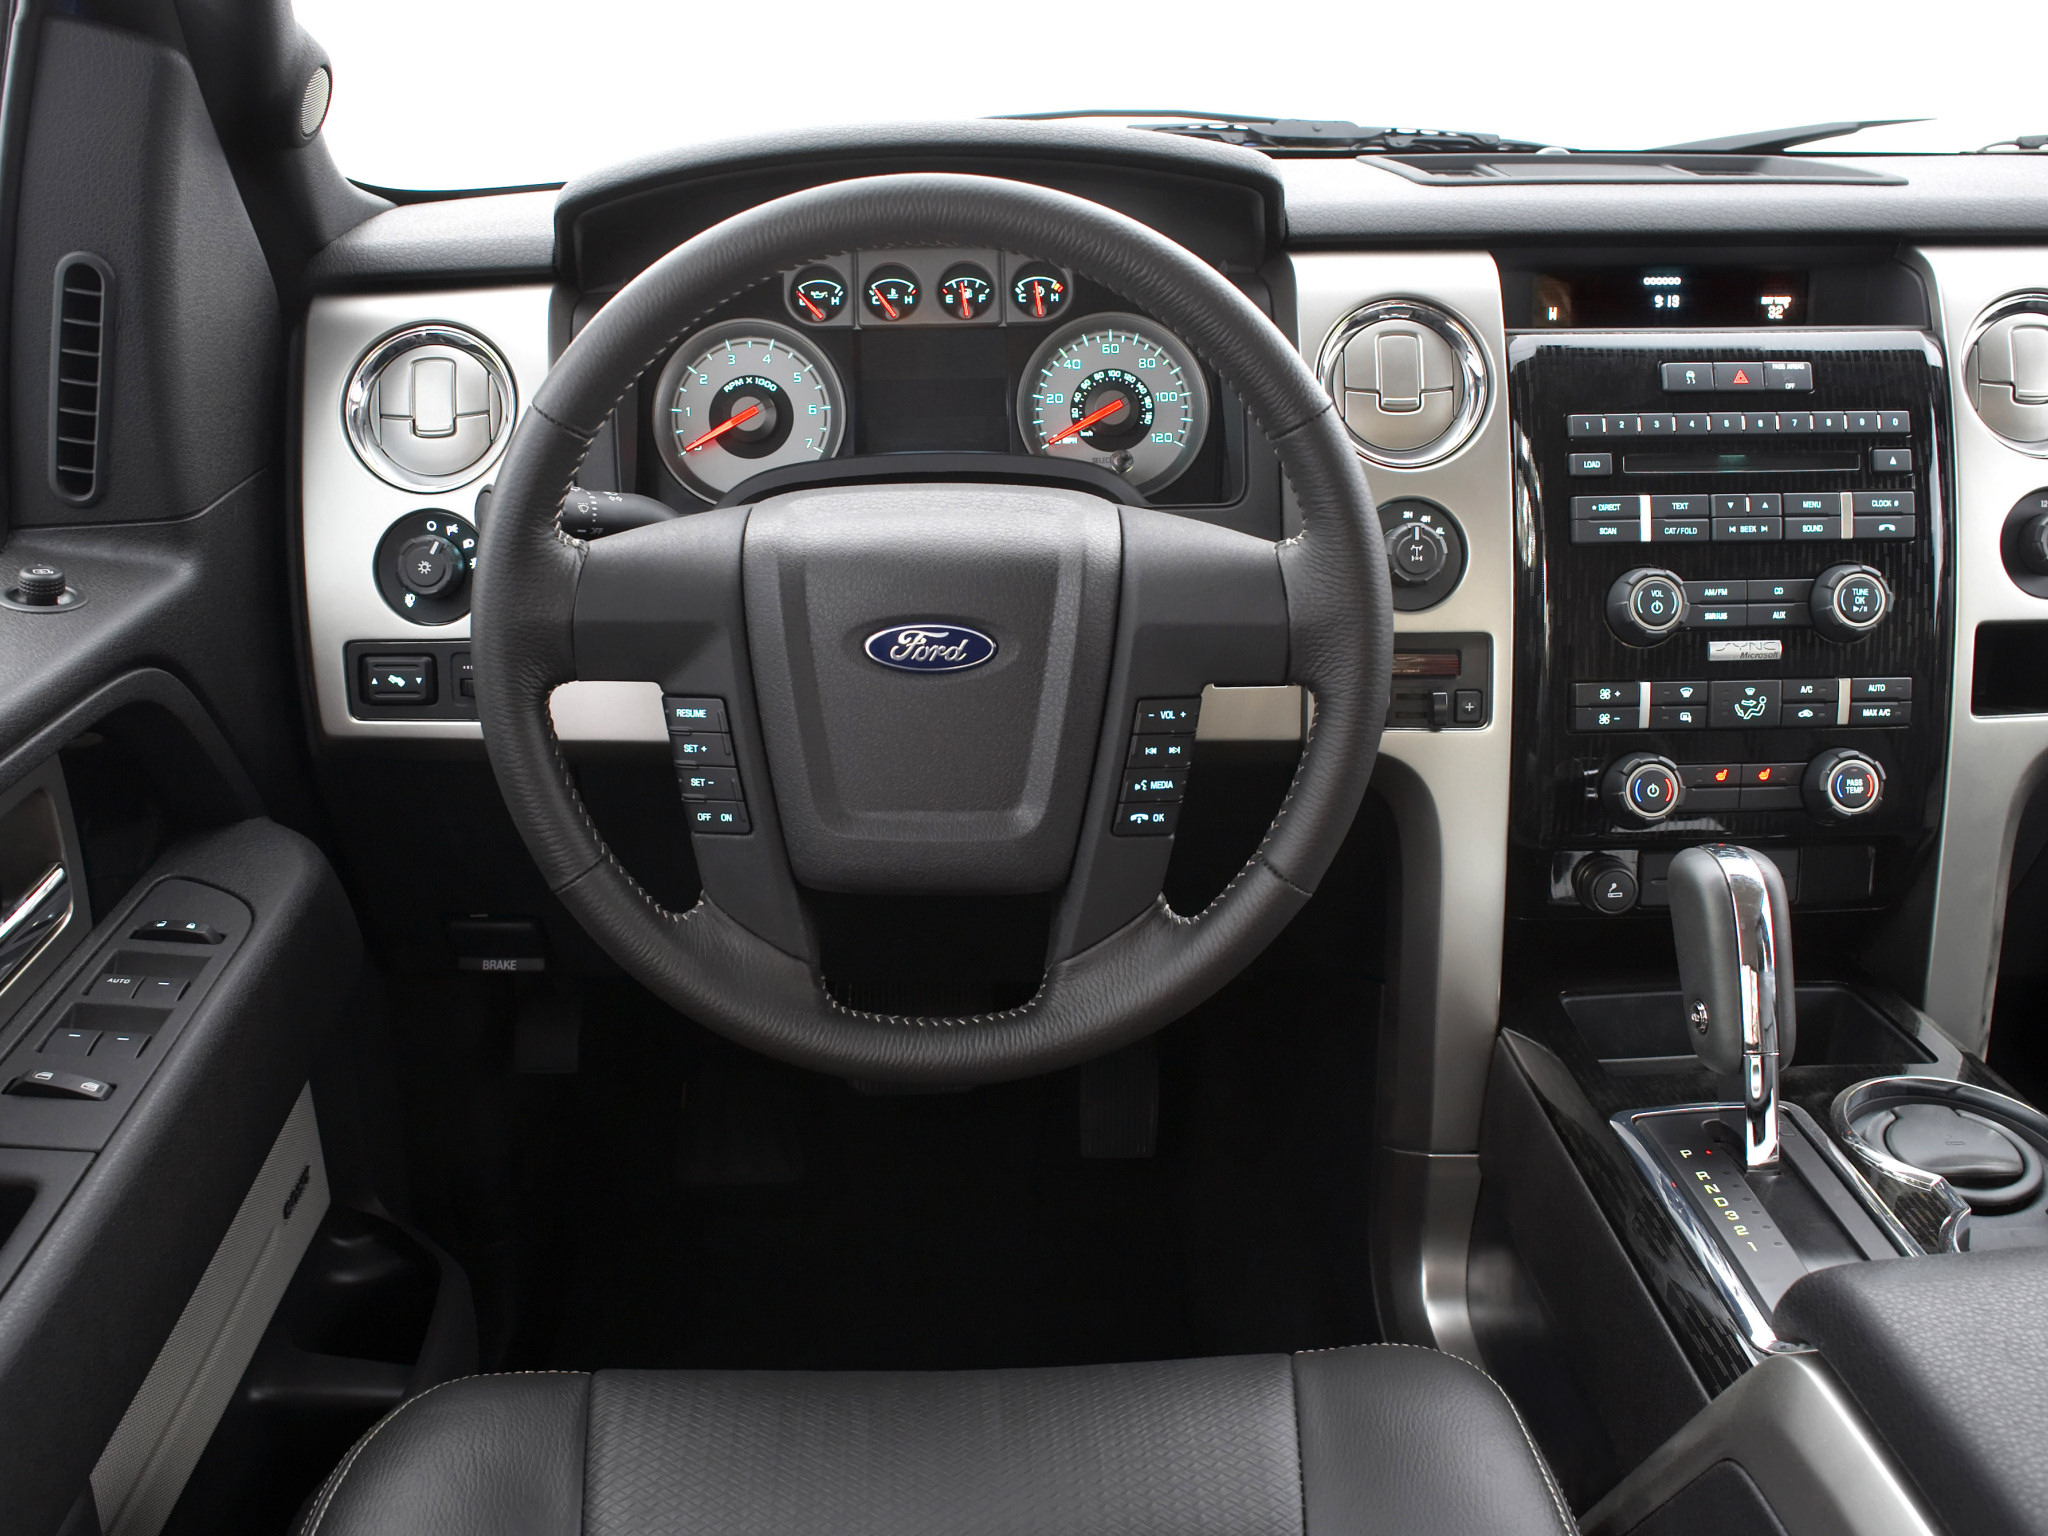 2008 ford f 150 fx4 4x4 truck interior wallpaper 2048x1536 108494 wallpaperup 2007 ford f 150 interior lights